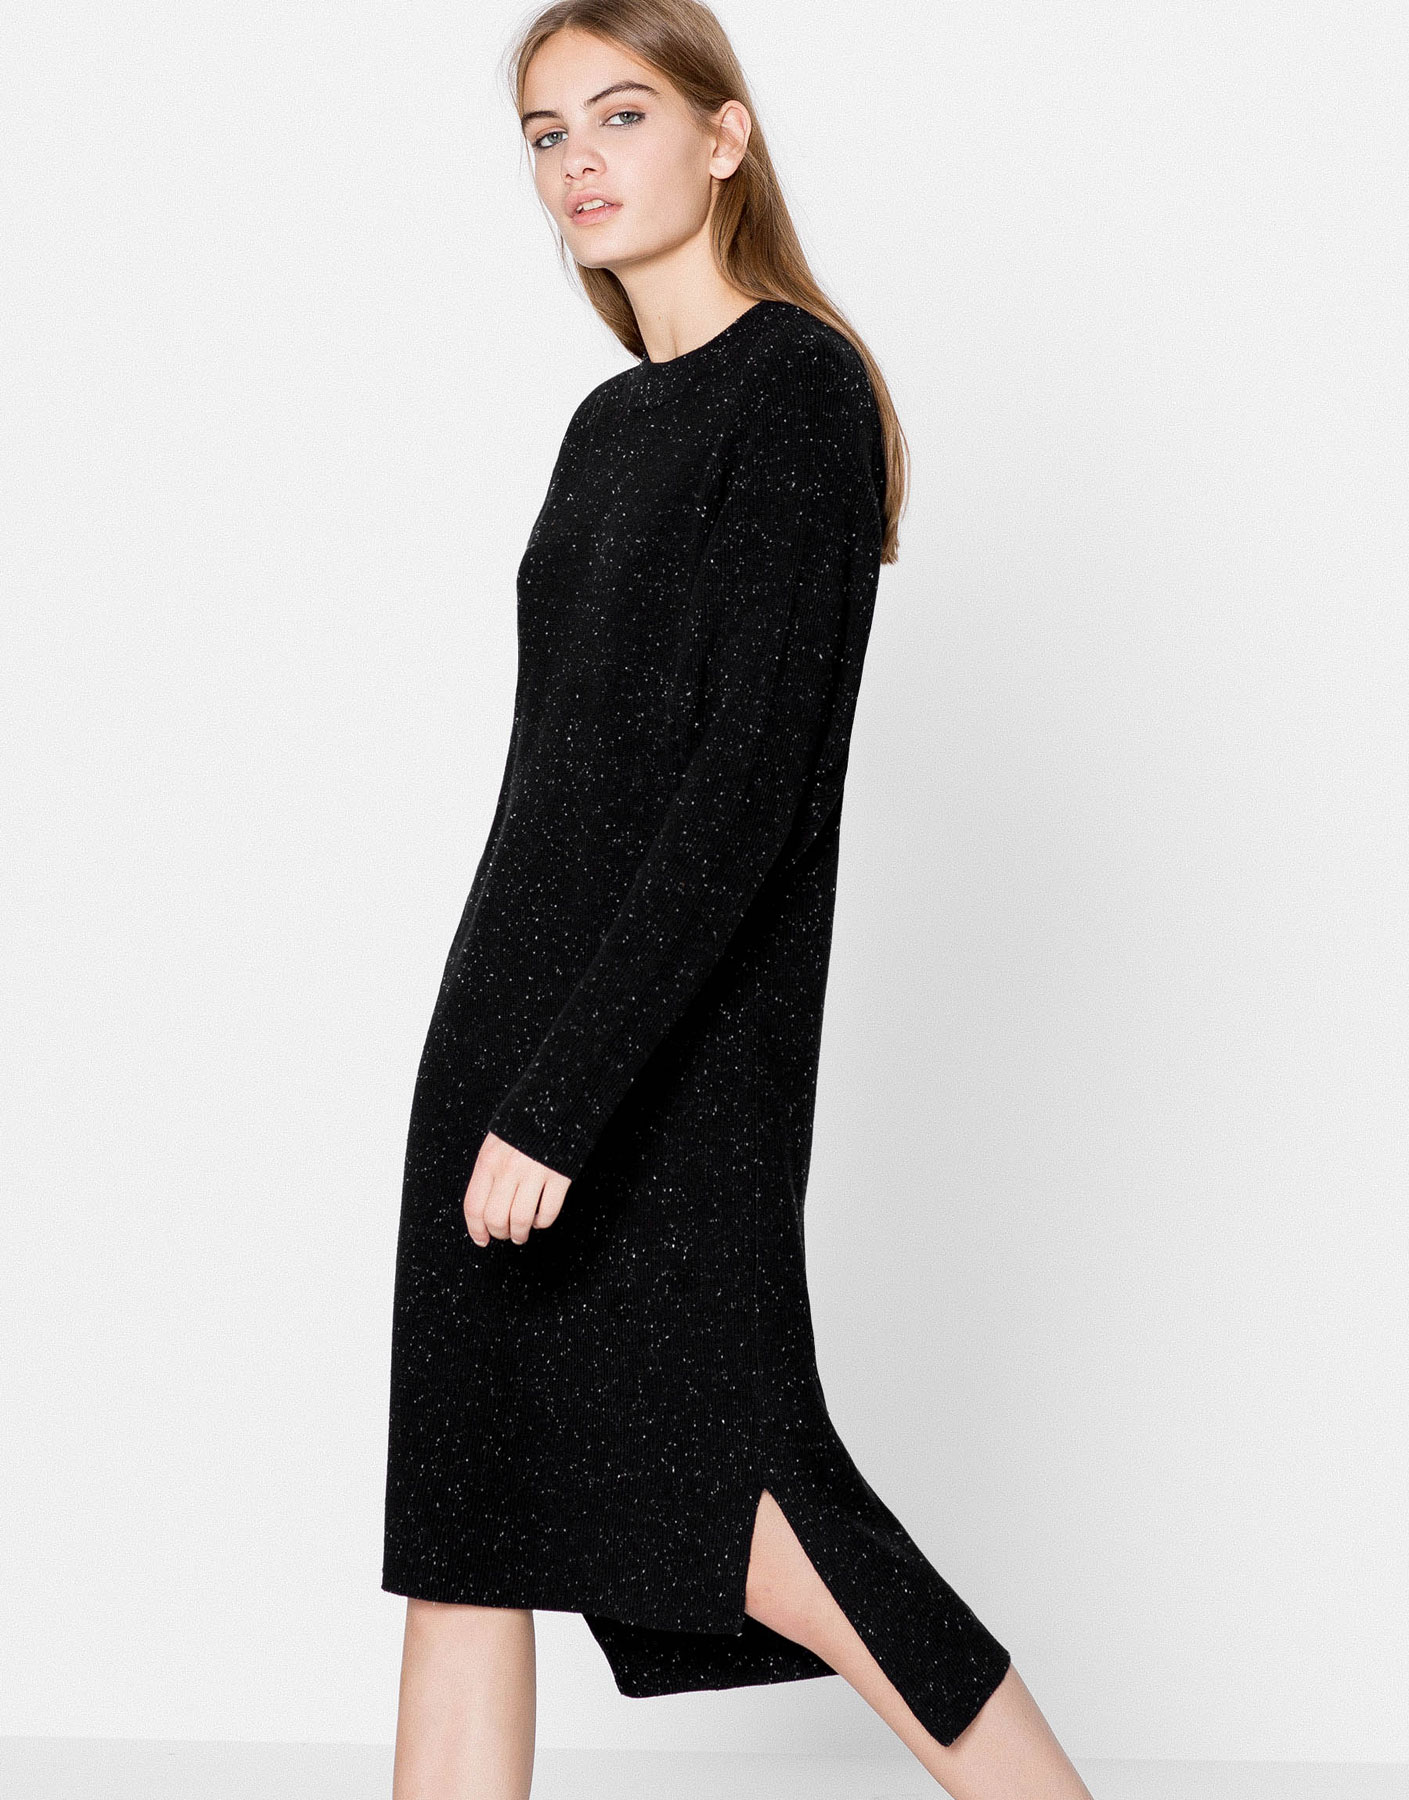 Asymmetric dress with batwing sleeves